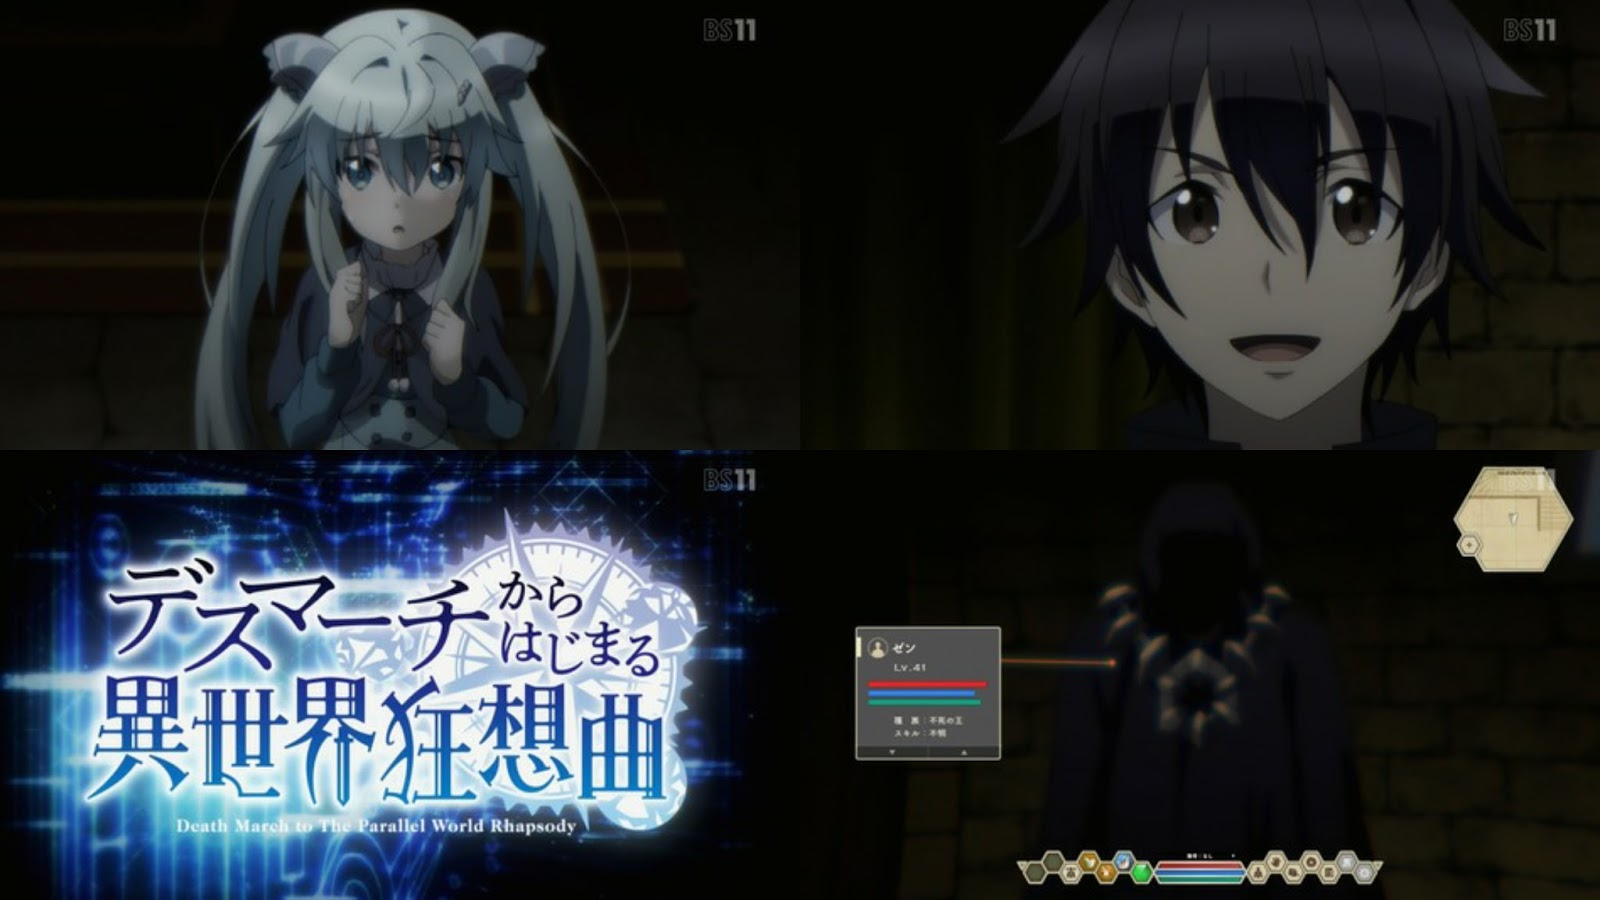 Anime Lover Death March Anime Wallpaper